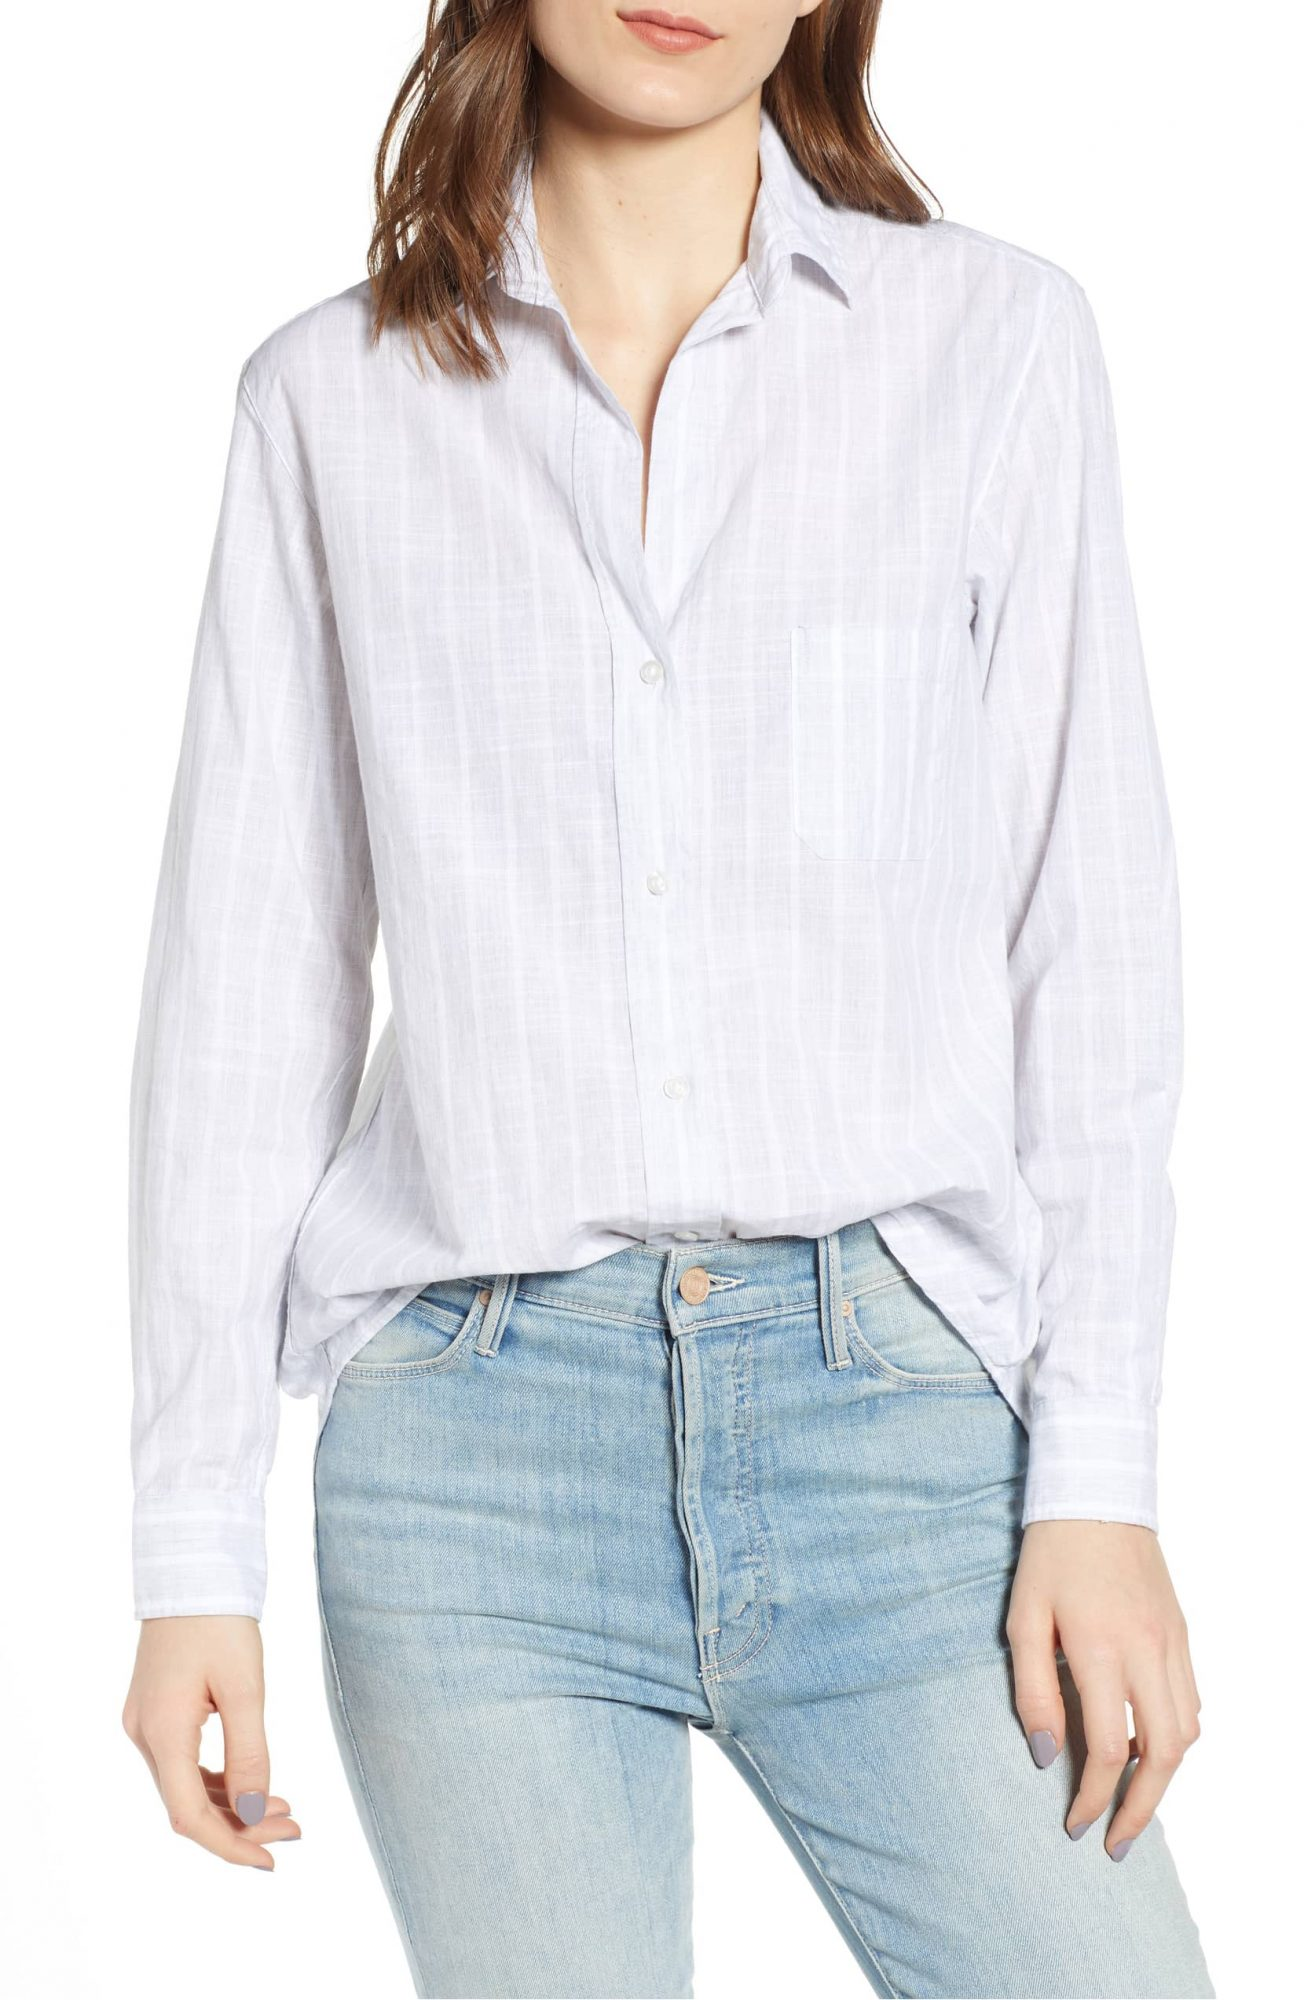 Gray and white stripe button-up from Grayson at Nordstrom